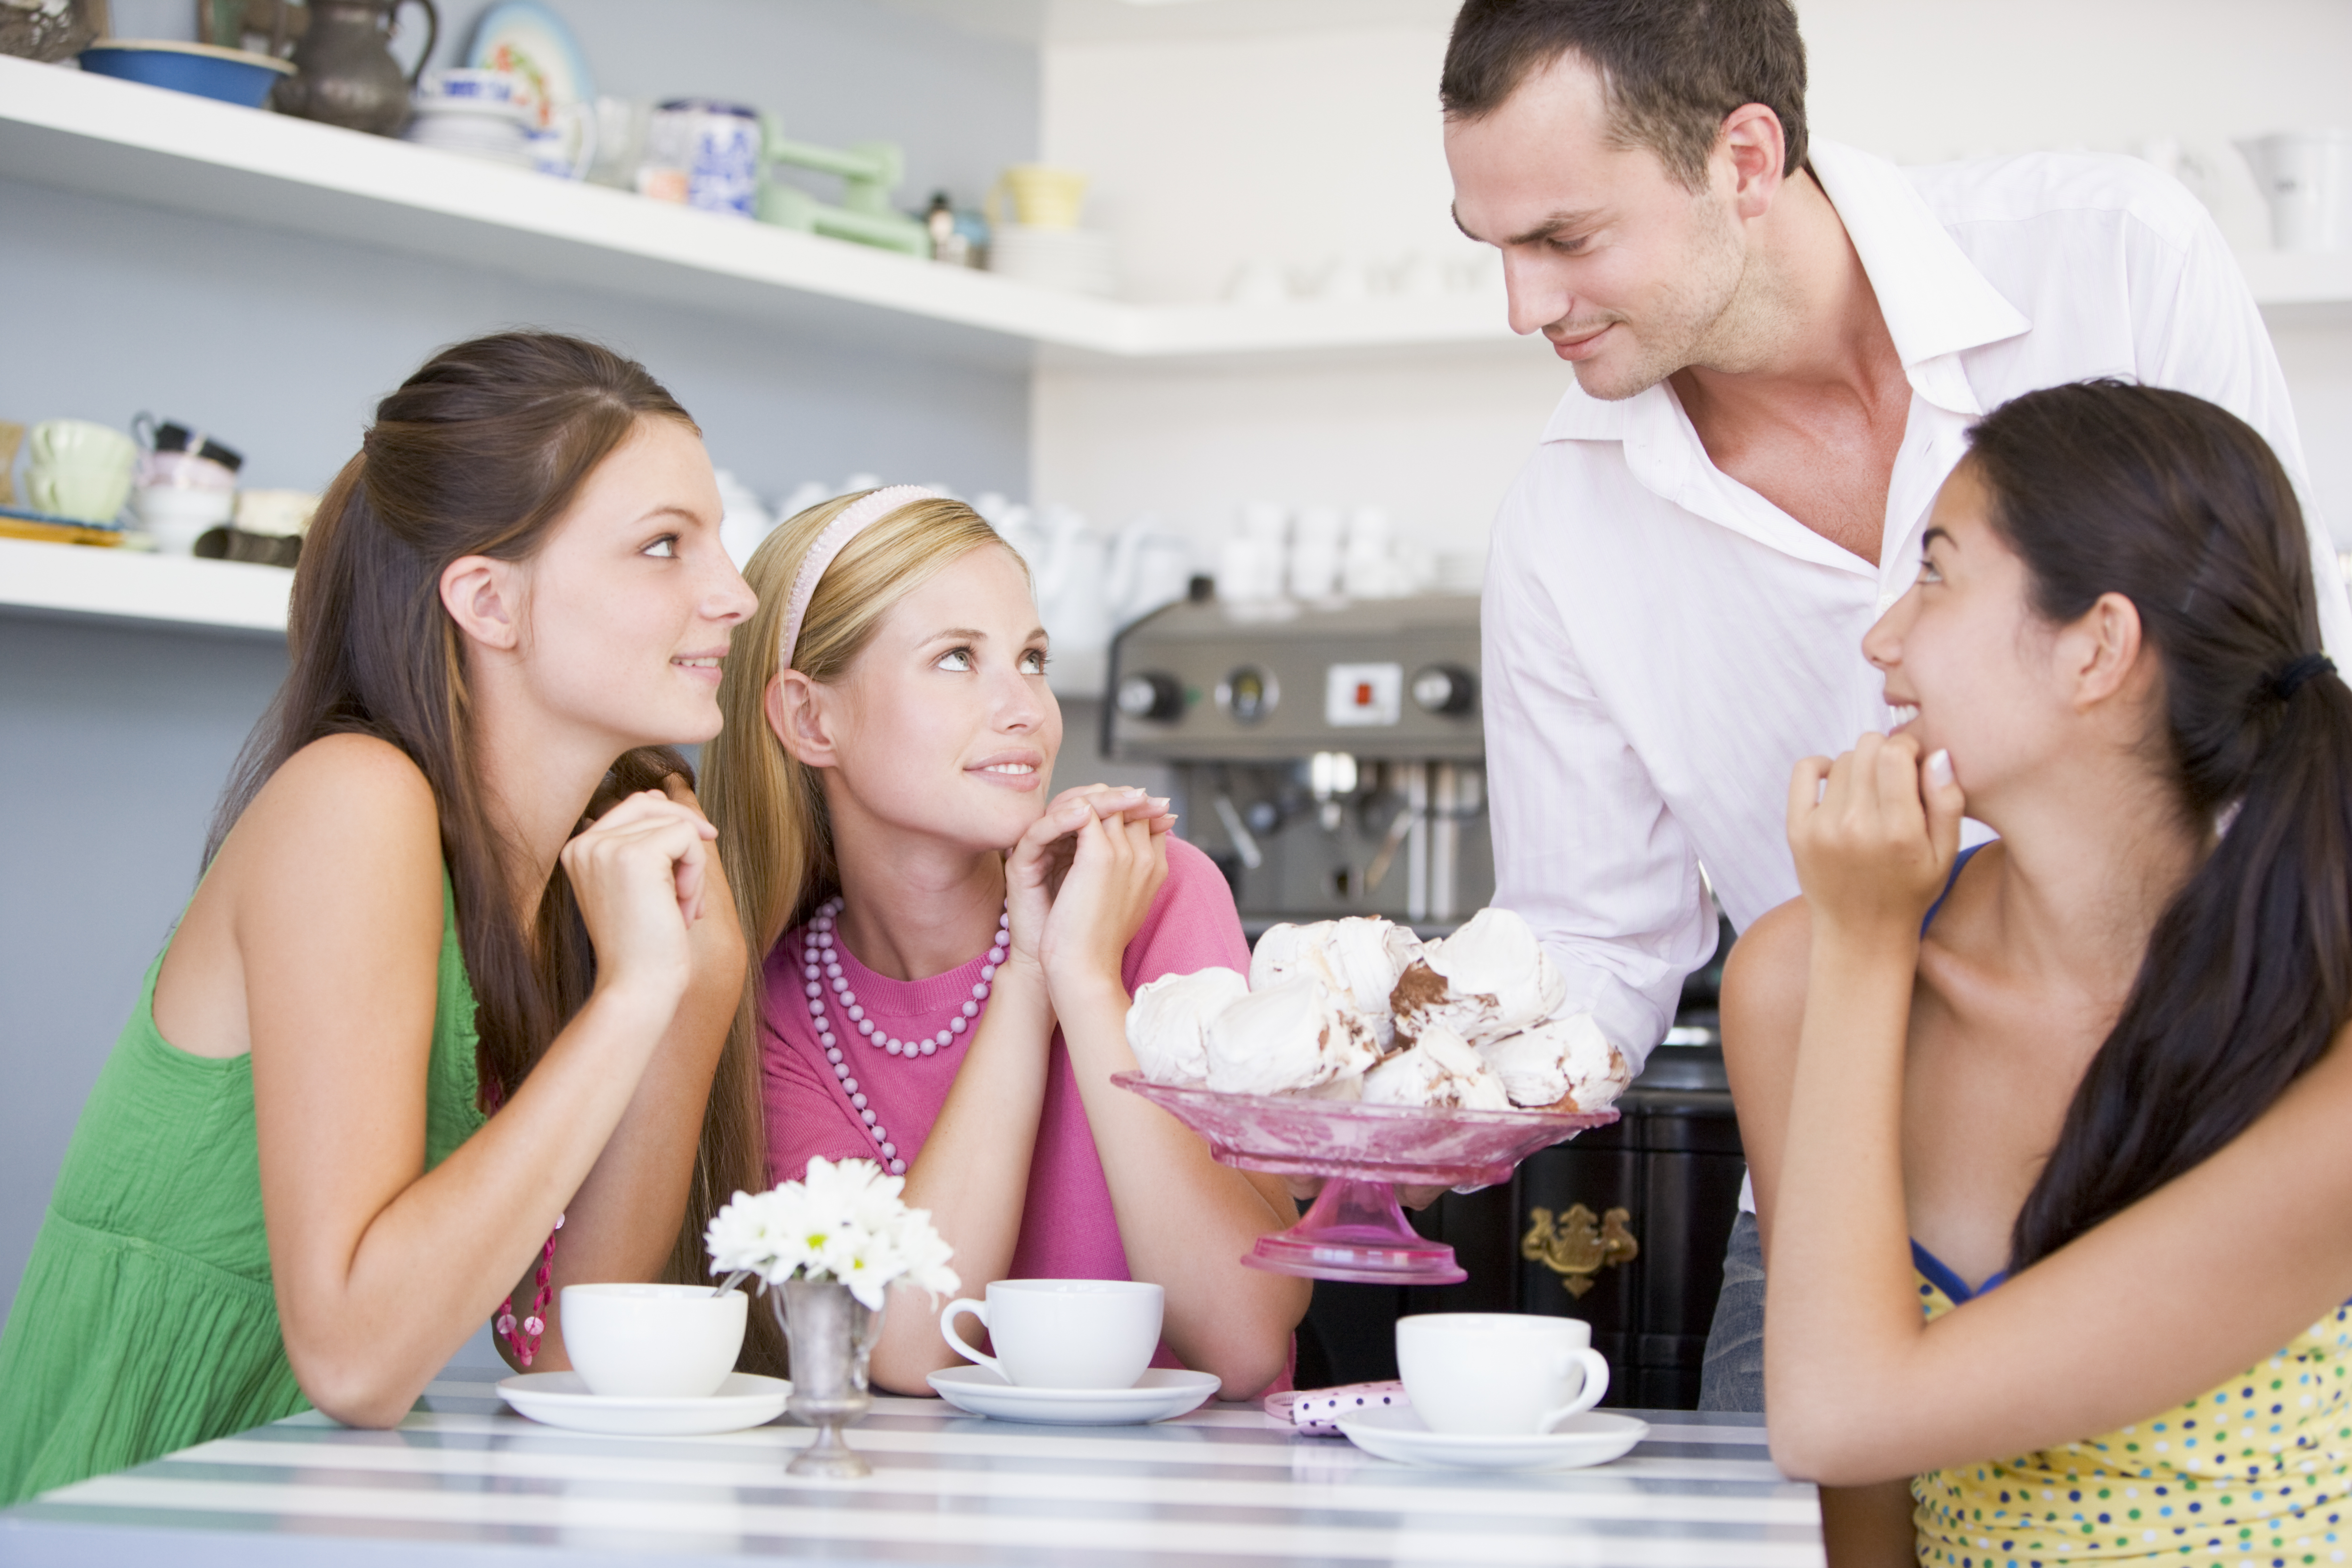 a-cafe-waiter-offers-young-women-teacakes_BKvH0Q0Bo.jpg